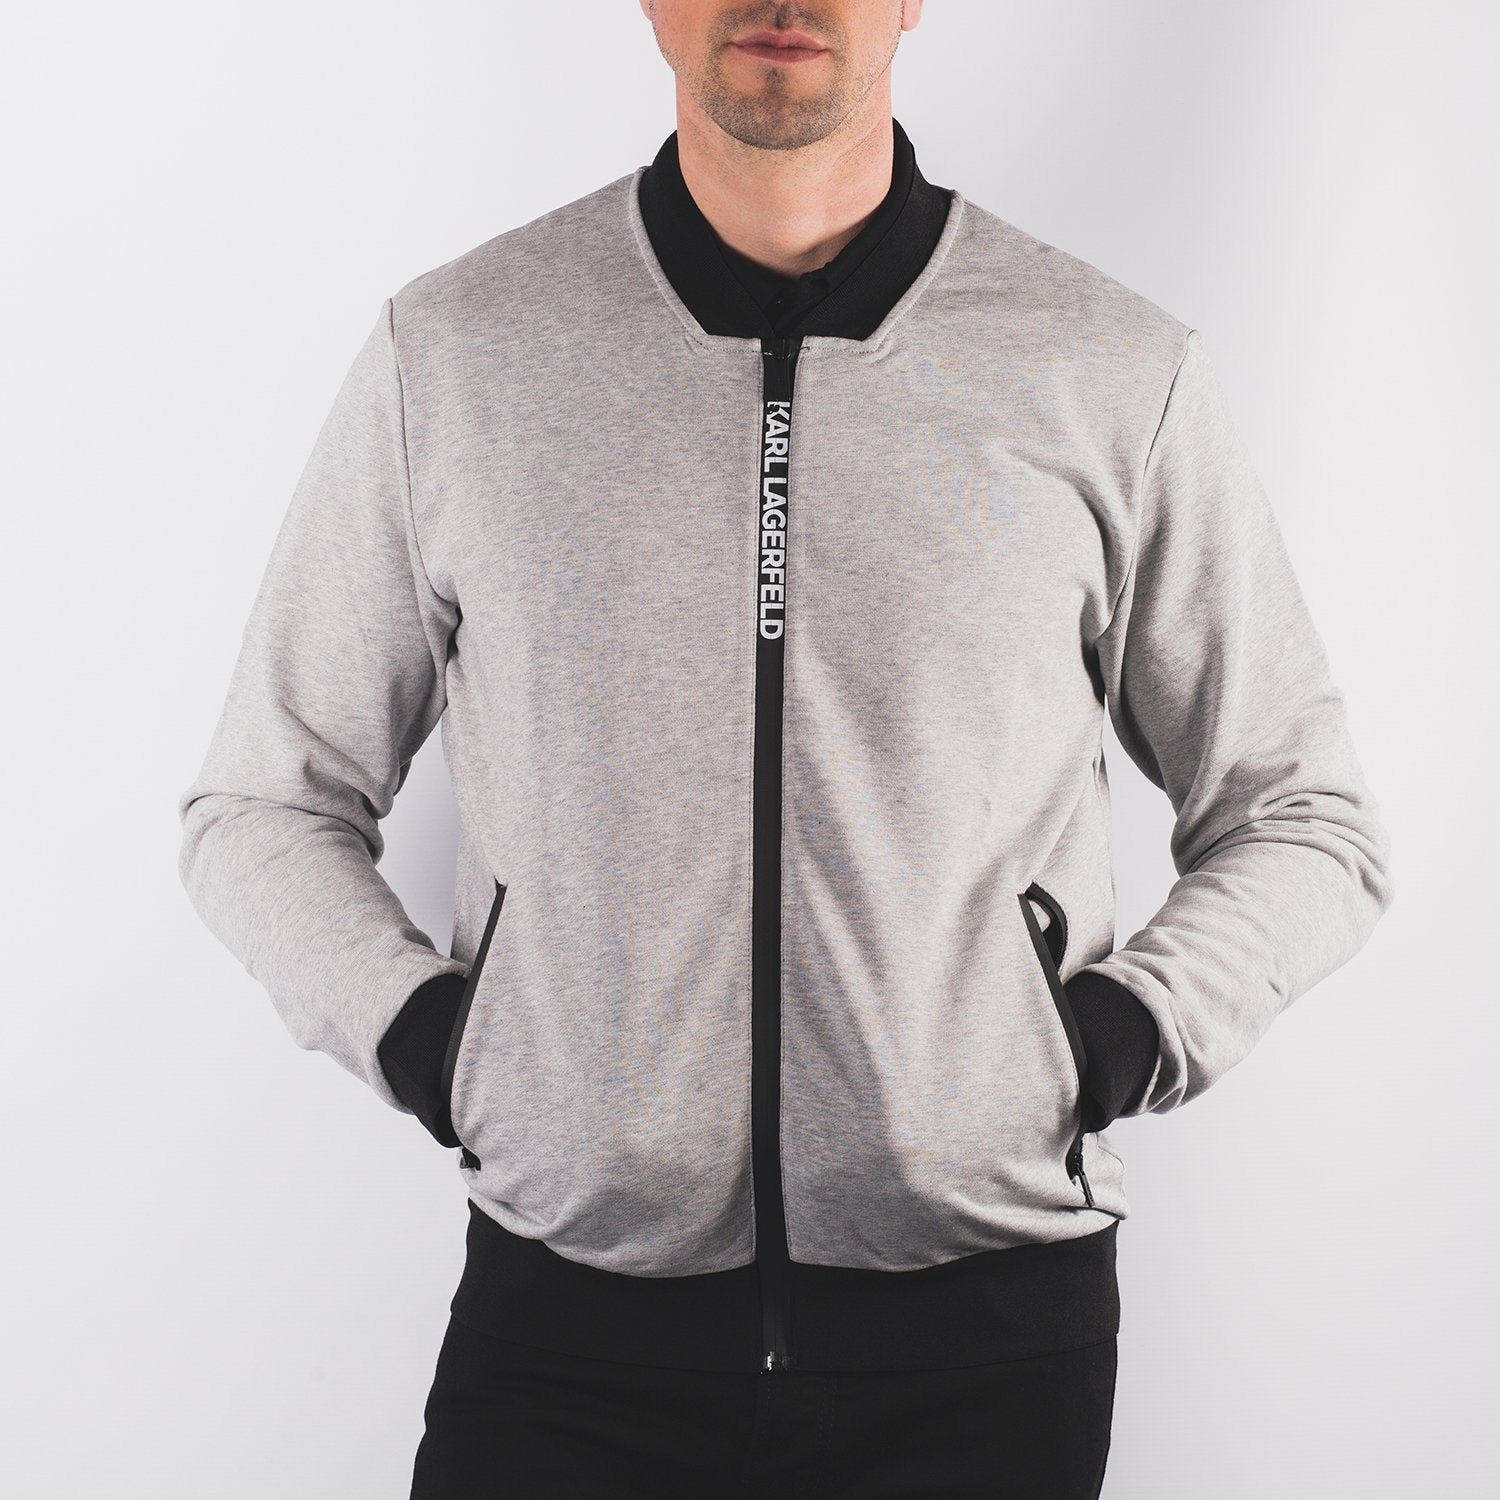 Karl Lagerfeld Sweat Jacket - Leonard Silver